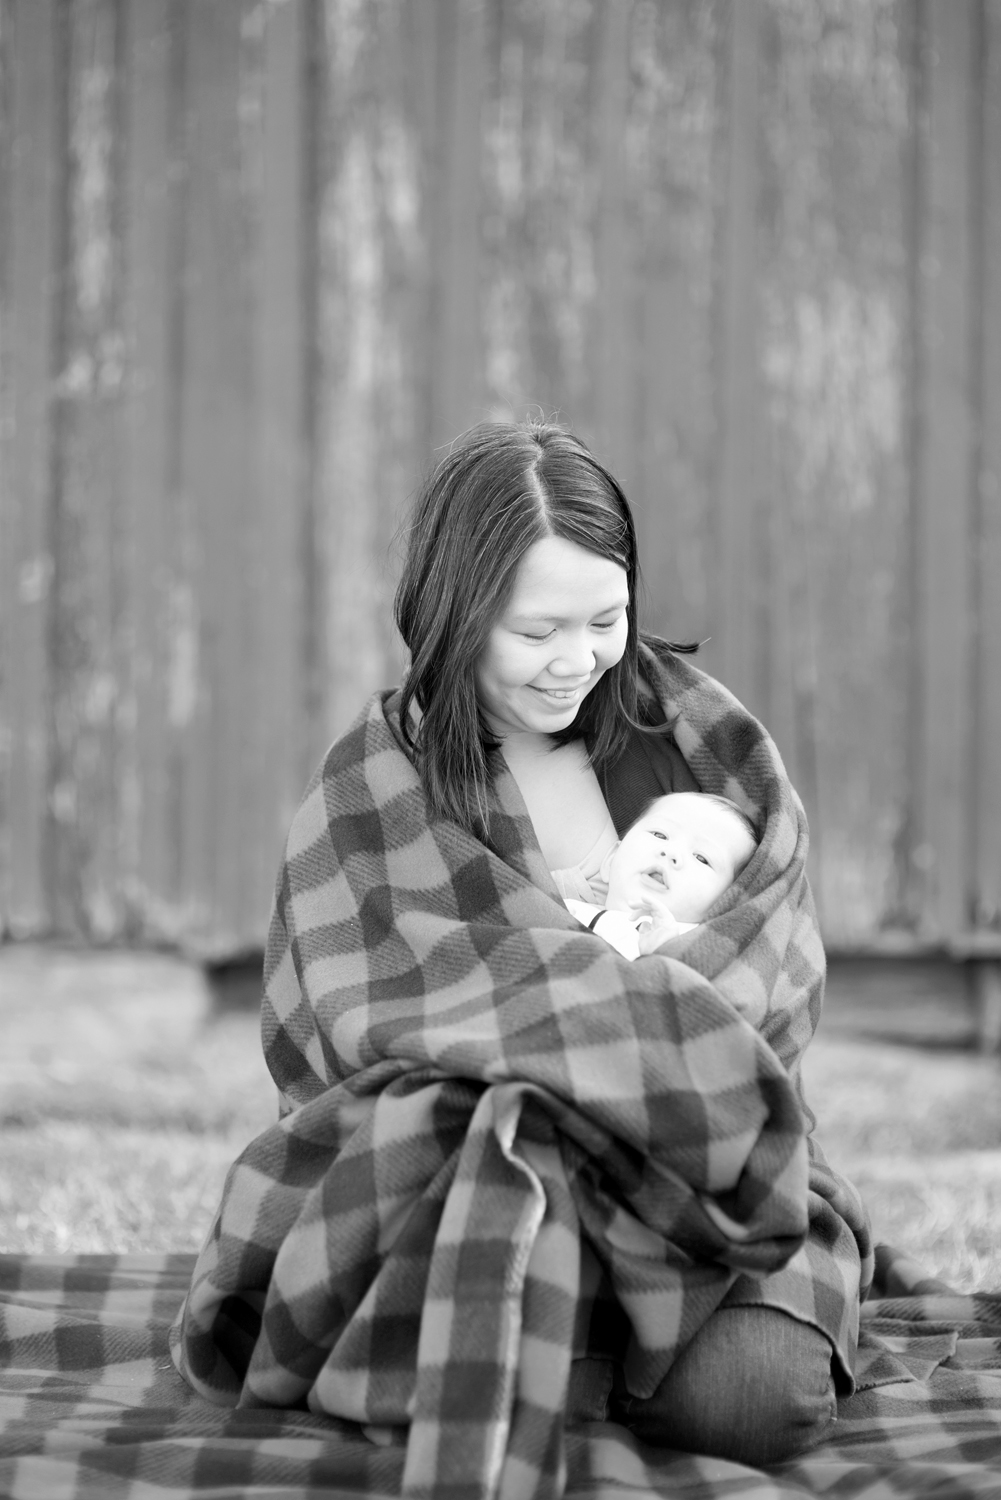 Family portrait session with mother and newborn baby (black and white)